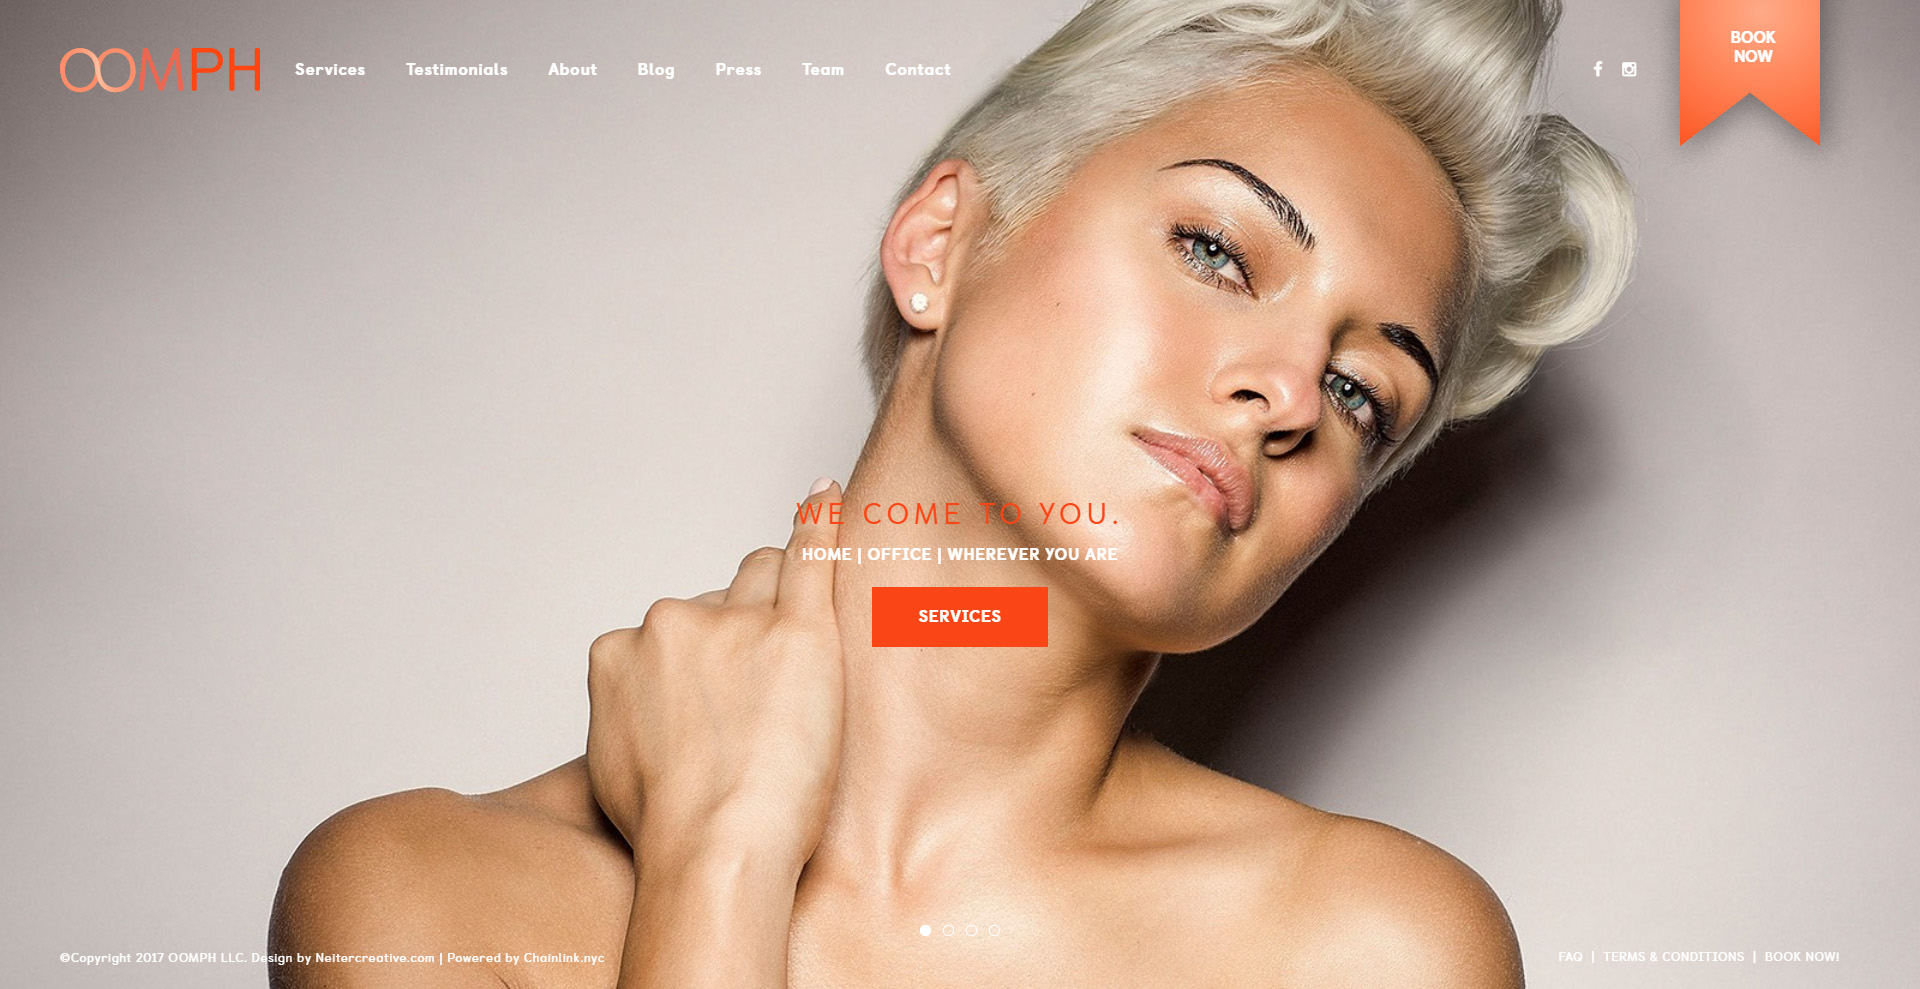 Oomph Close the Loop Group Website Design